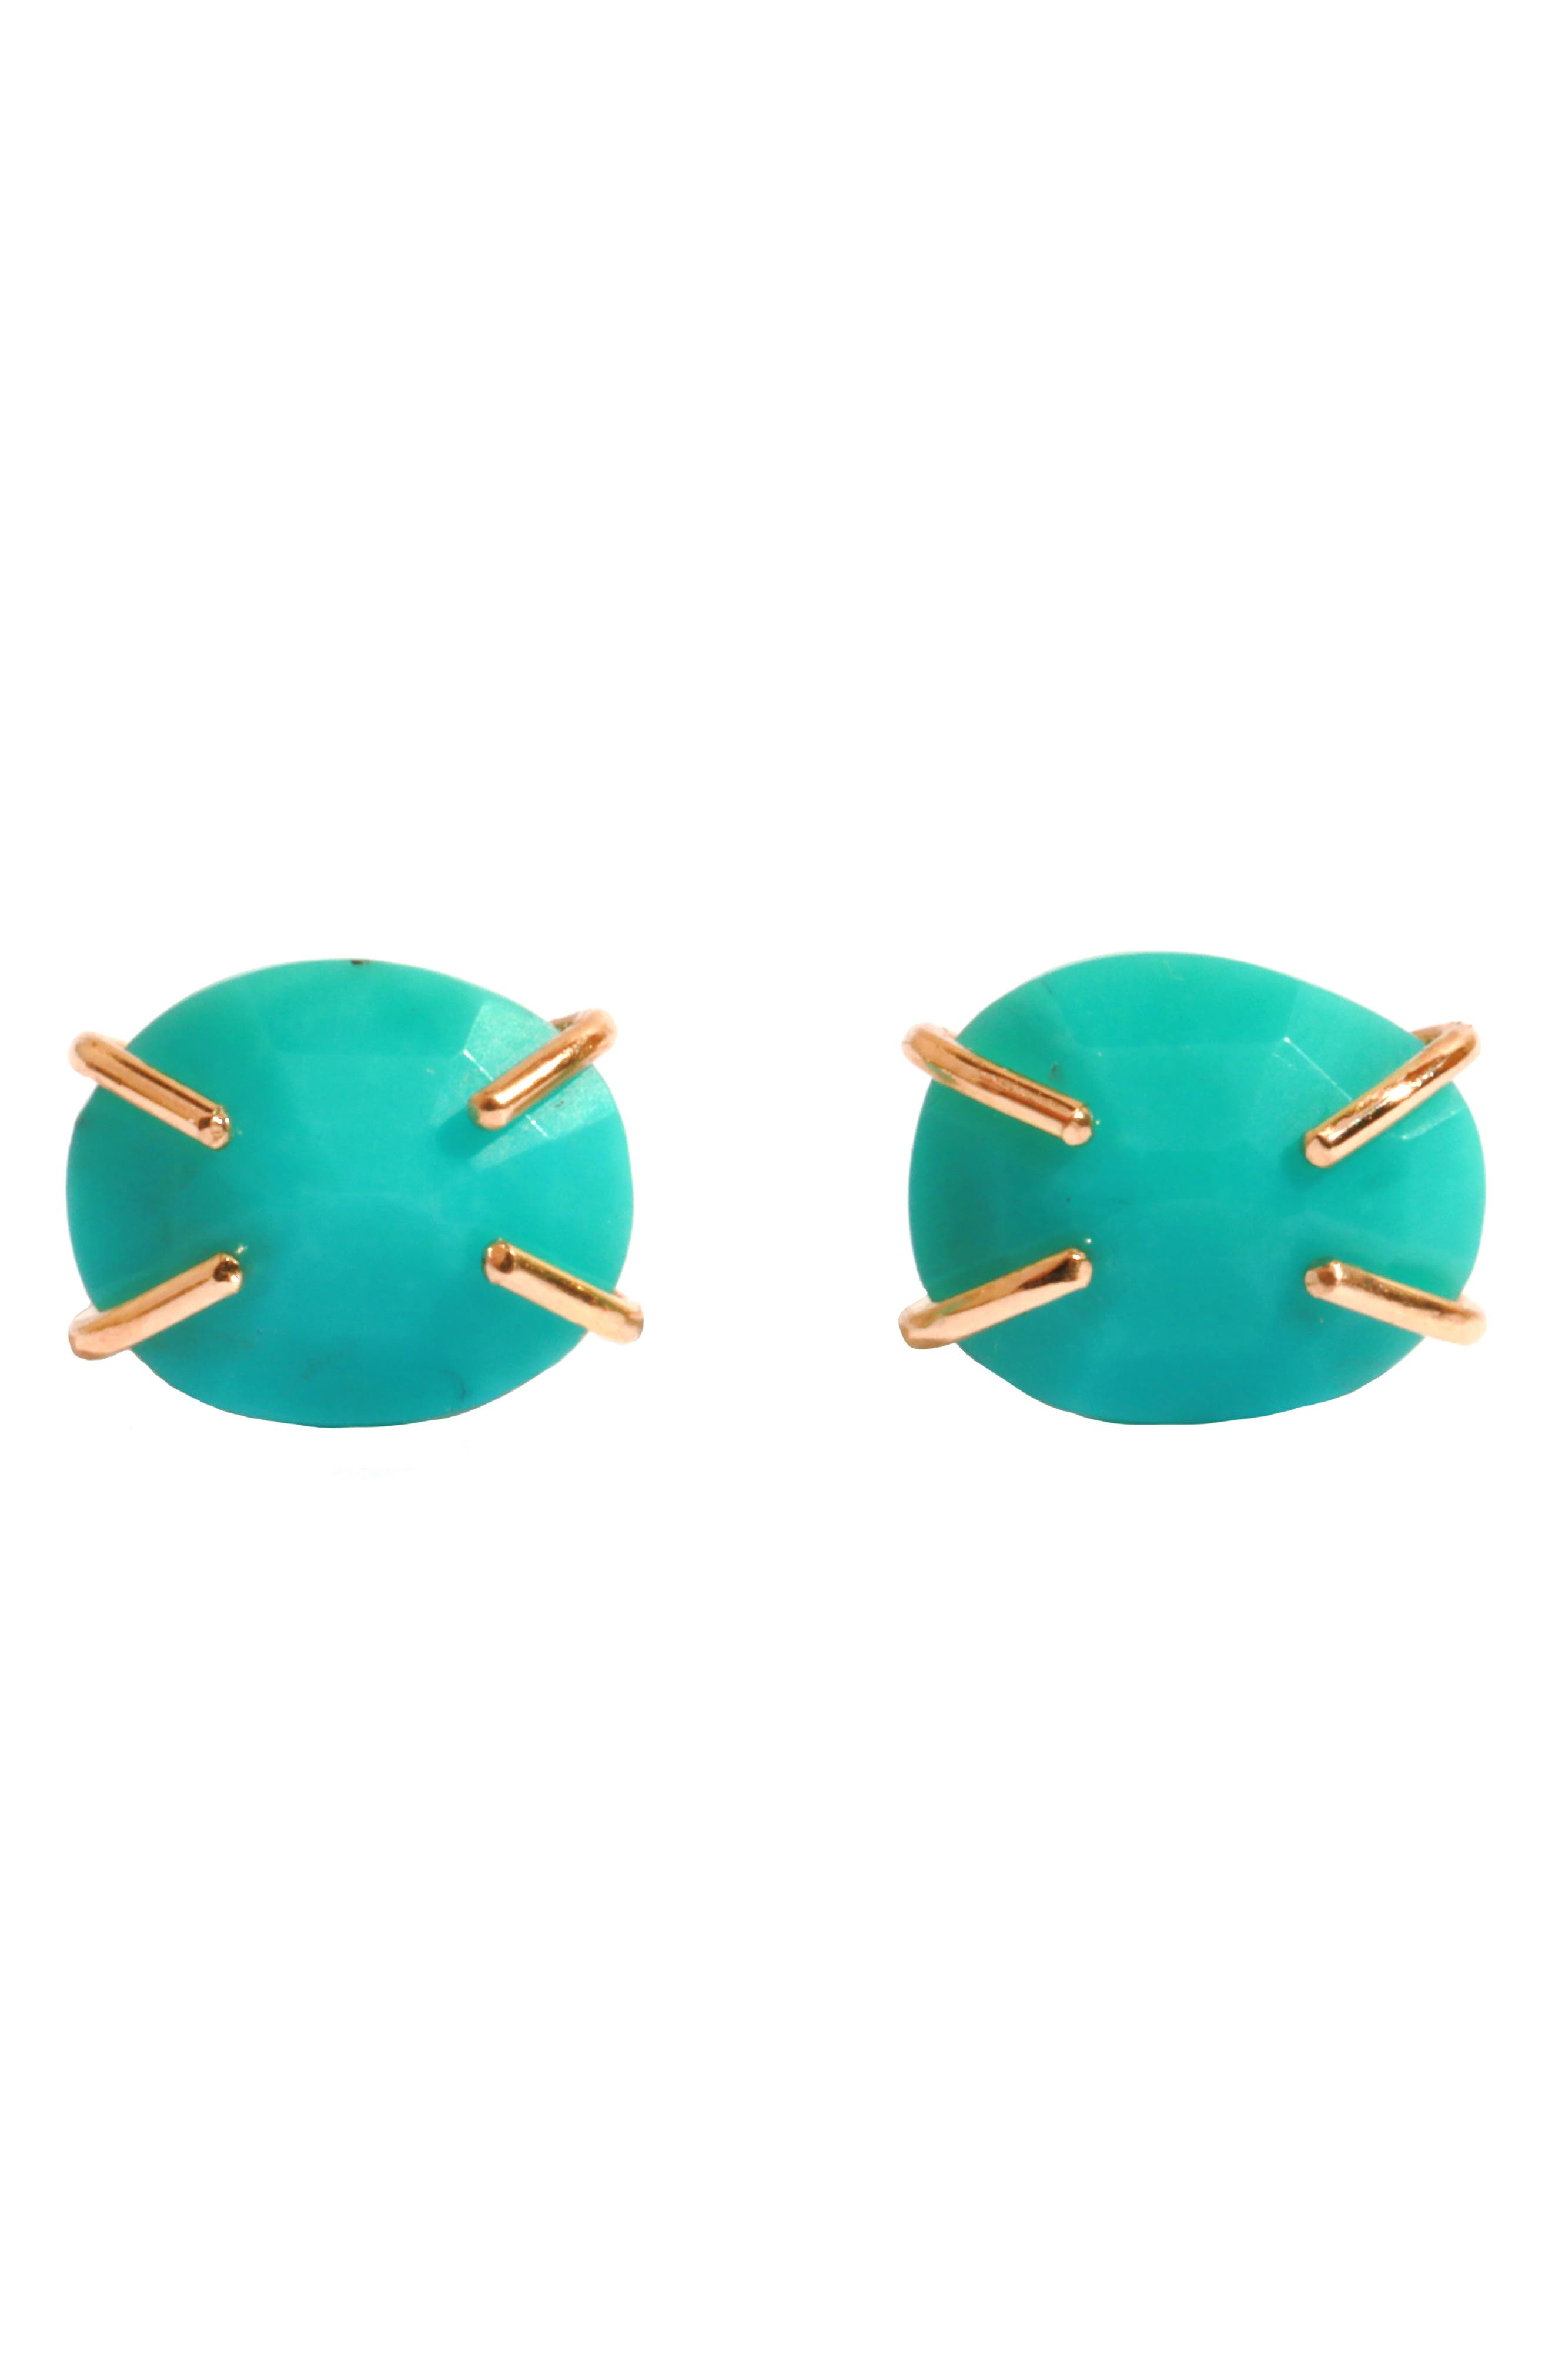 Turquoise Prong Stud Earrings,                         Main,                         color, Yellow Gold